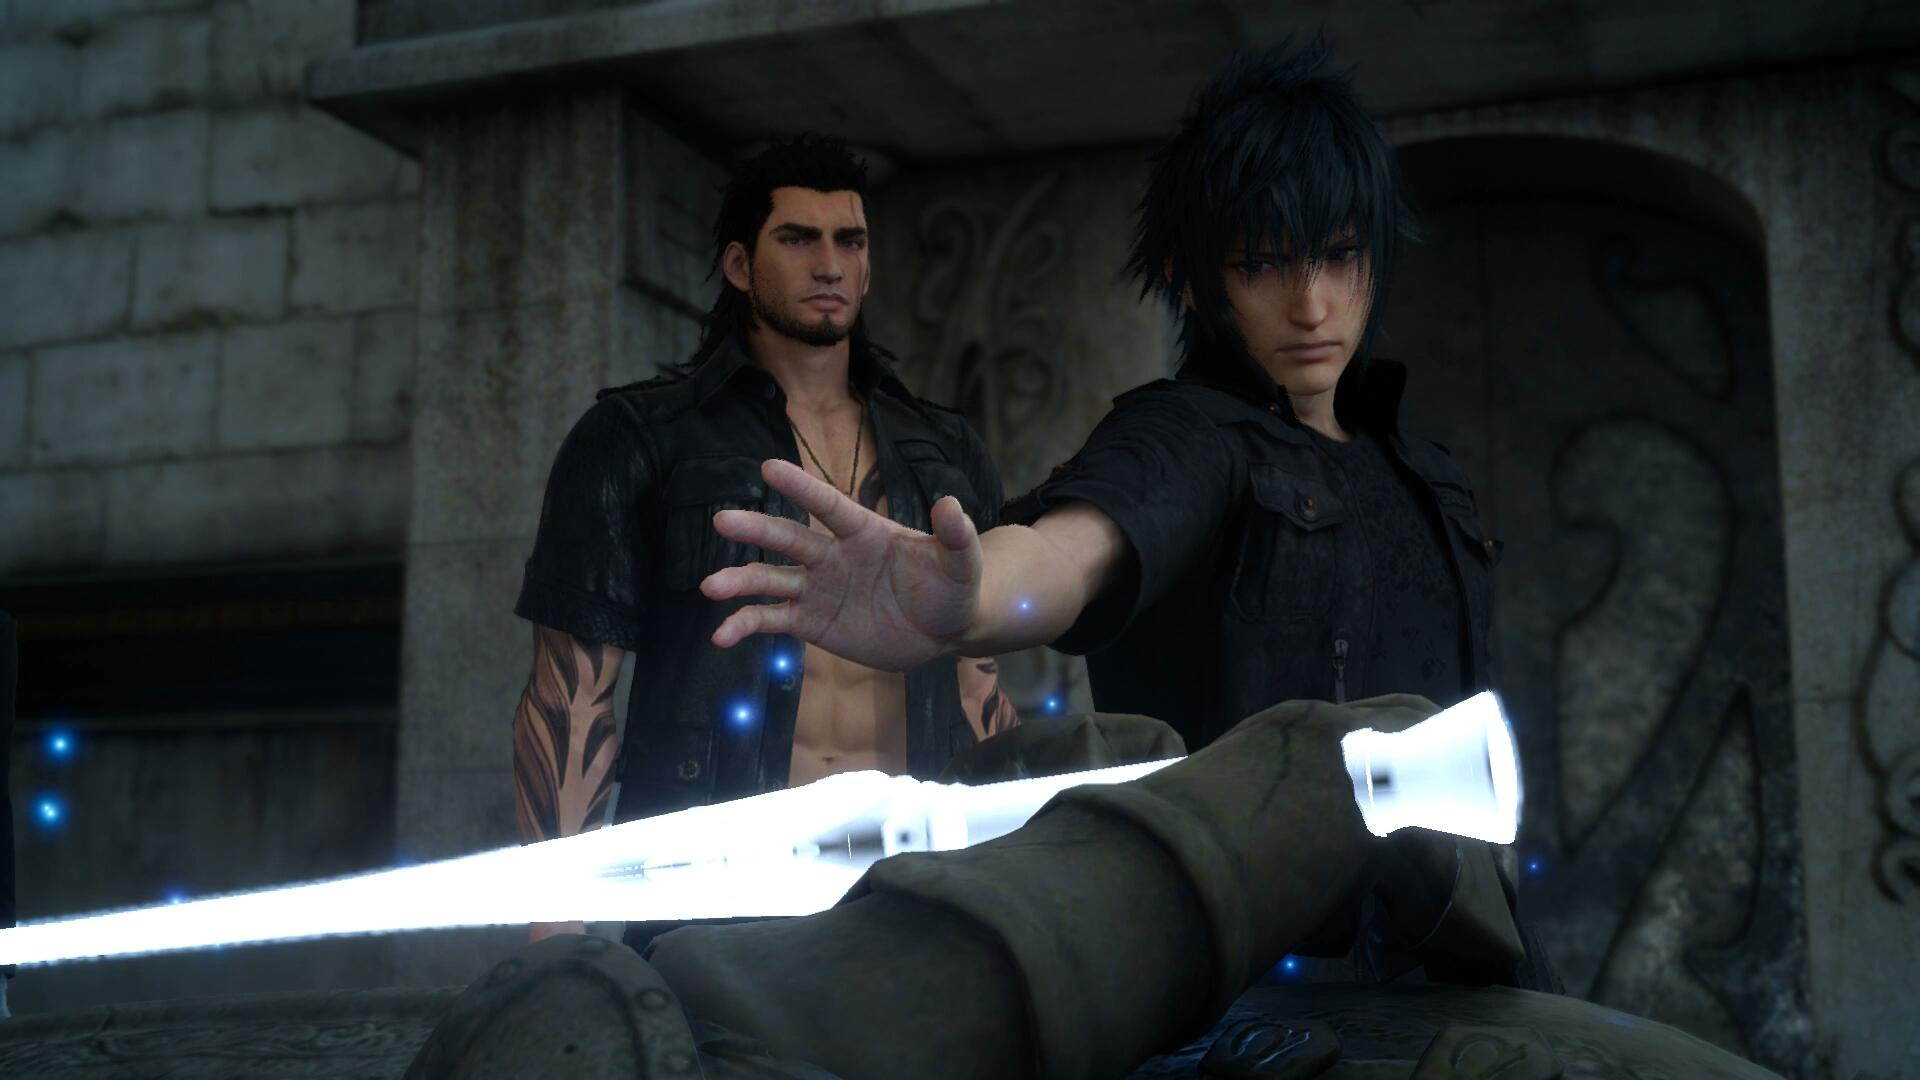 Final Fantasy 15 Royal Arms Location Guide - How to get all Royal